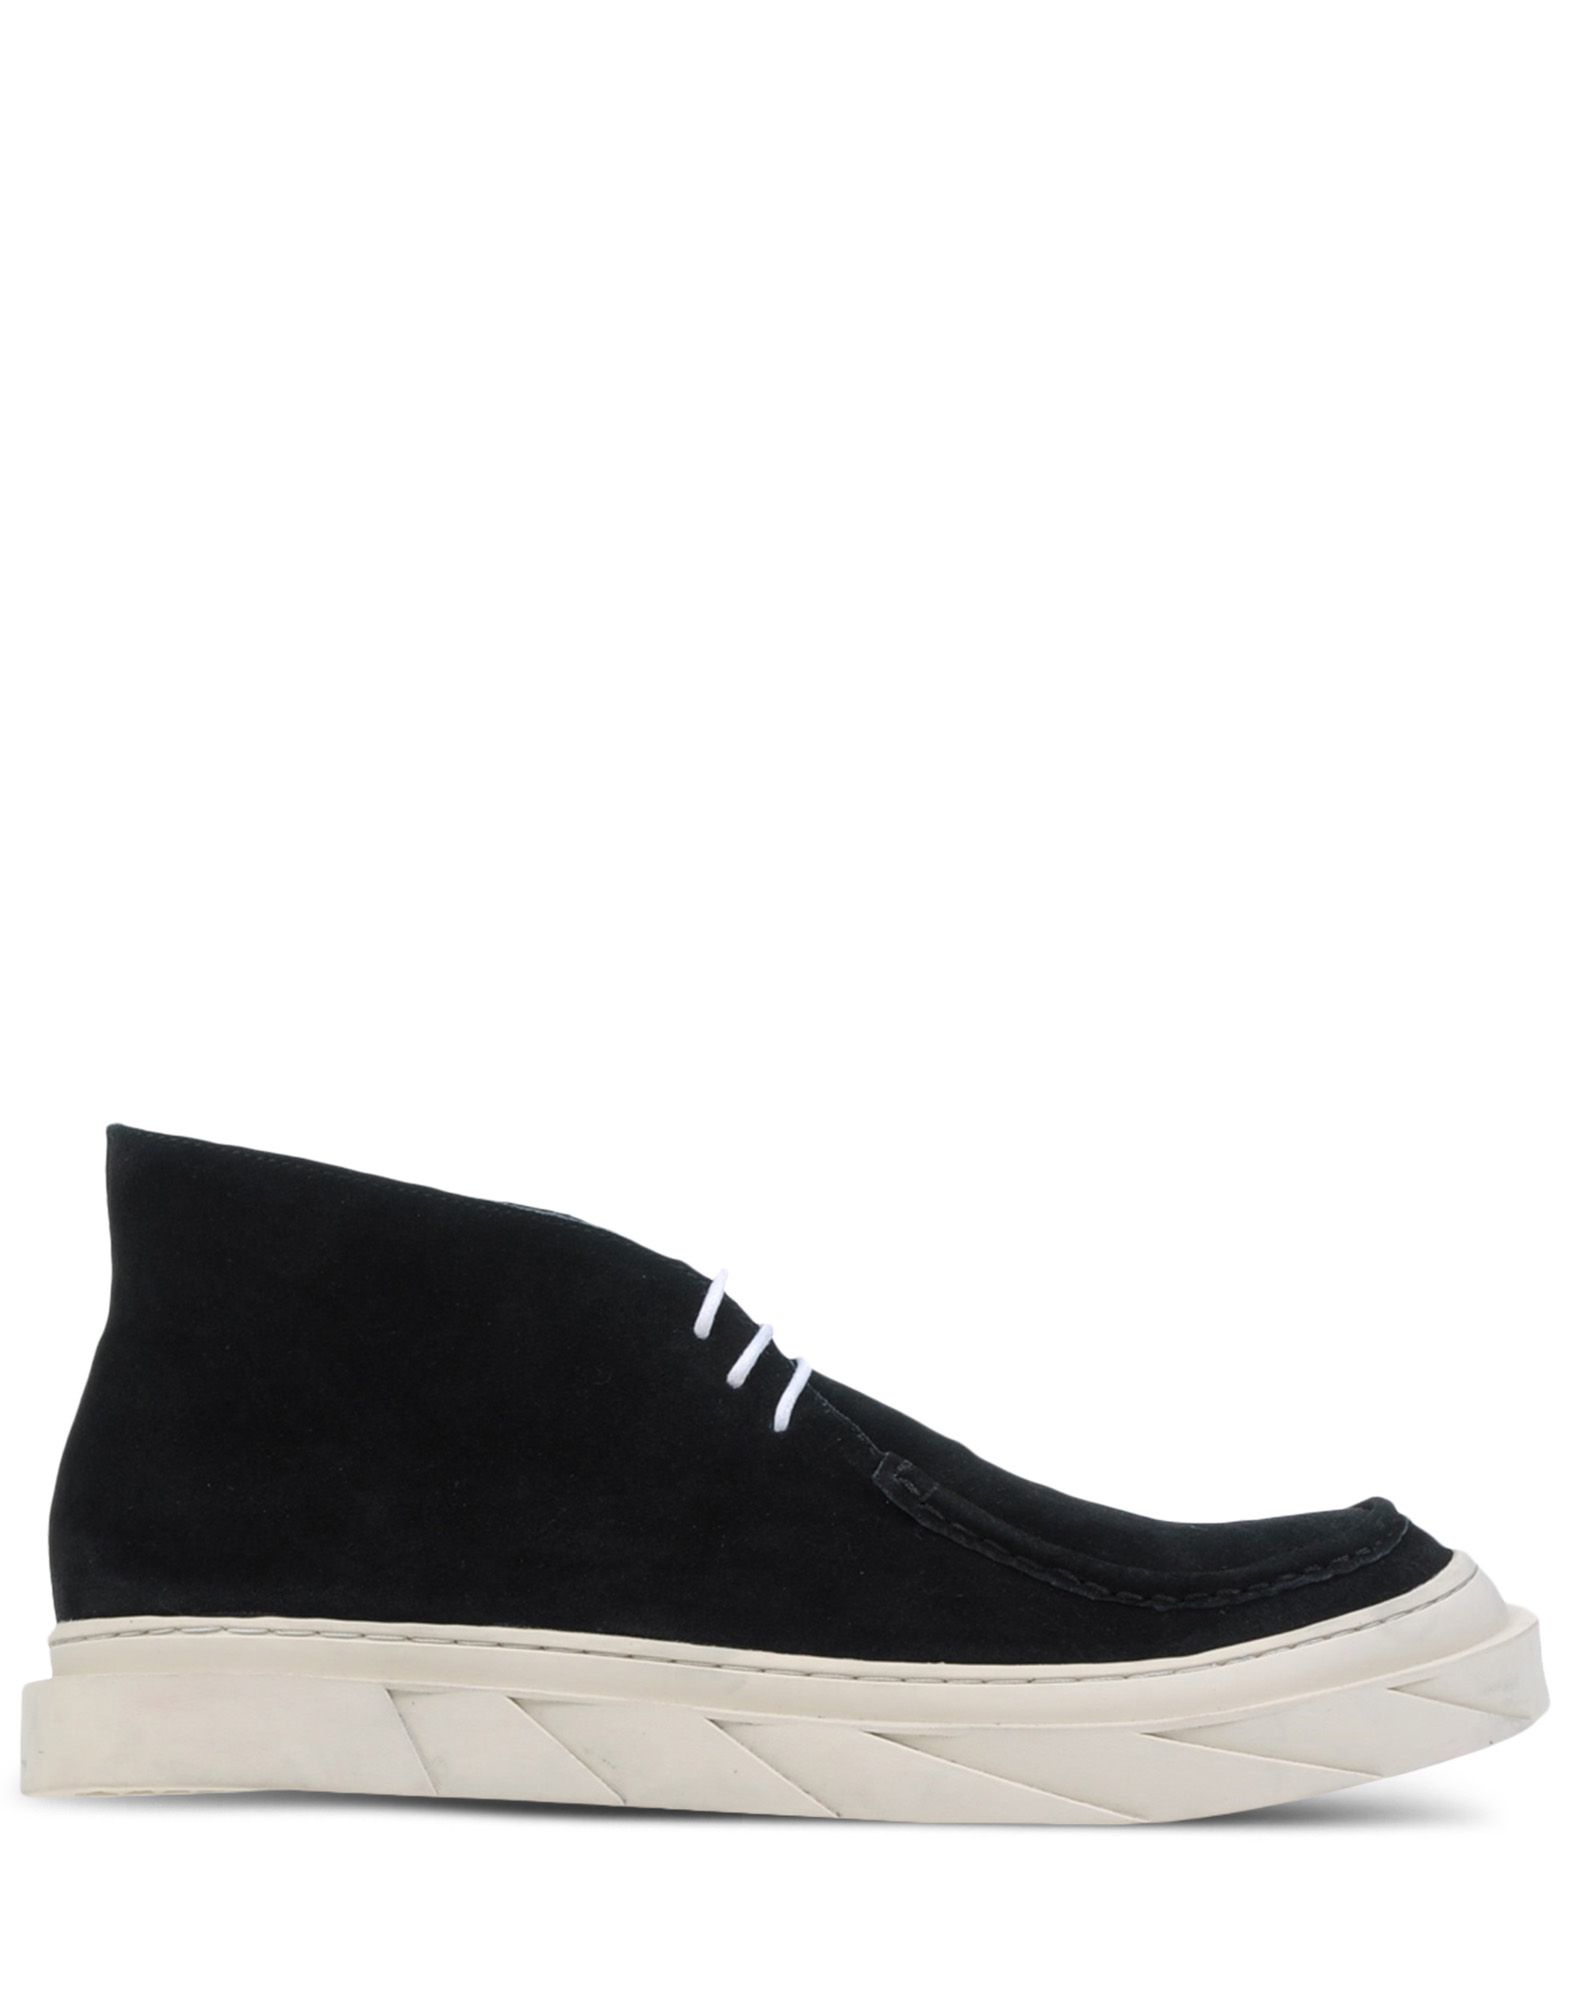 d gnak by kang d high top dress shoes in black for lyst